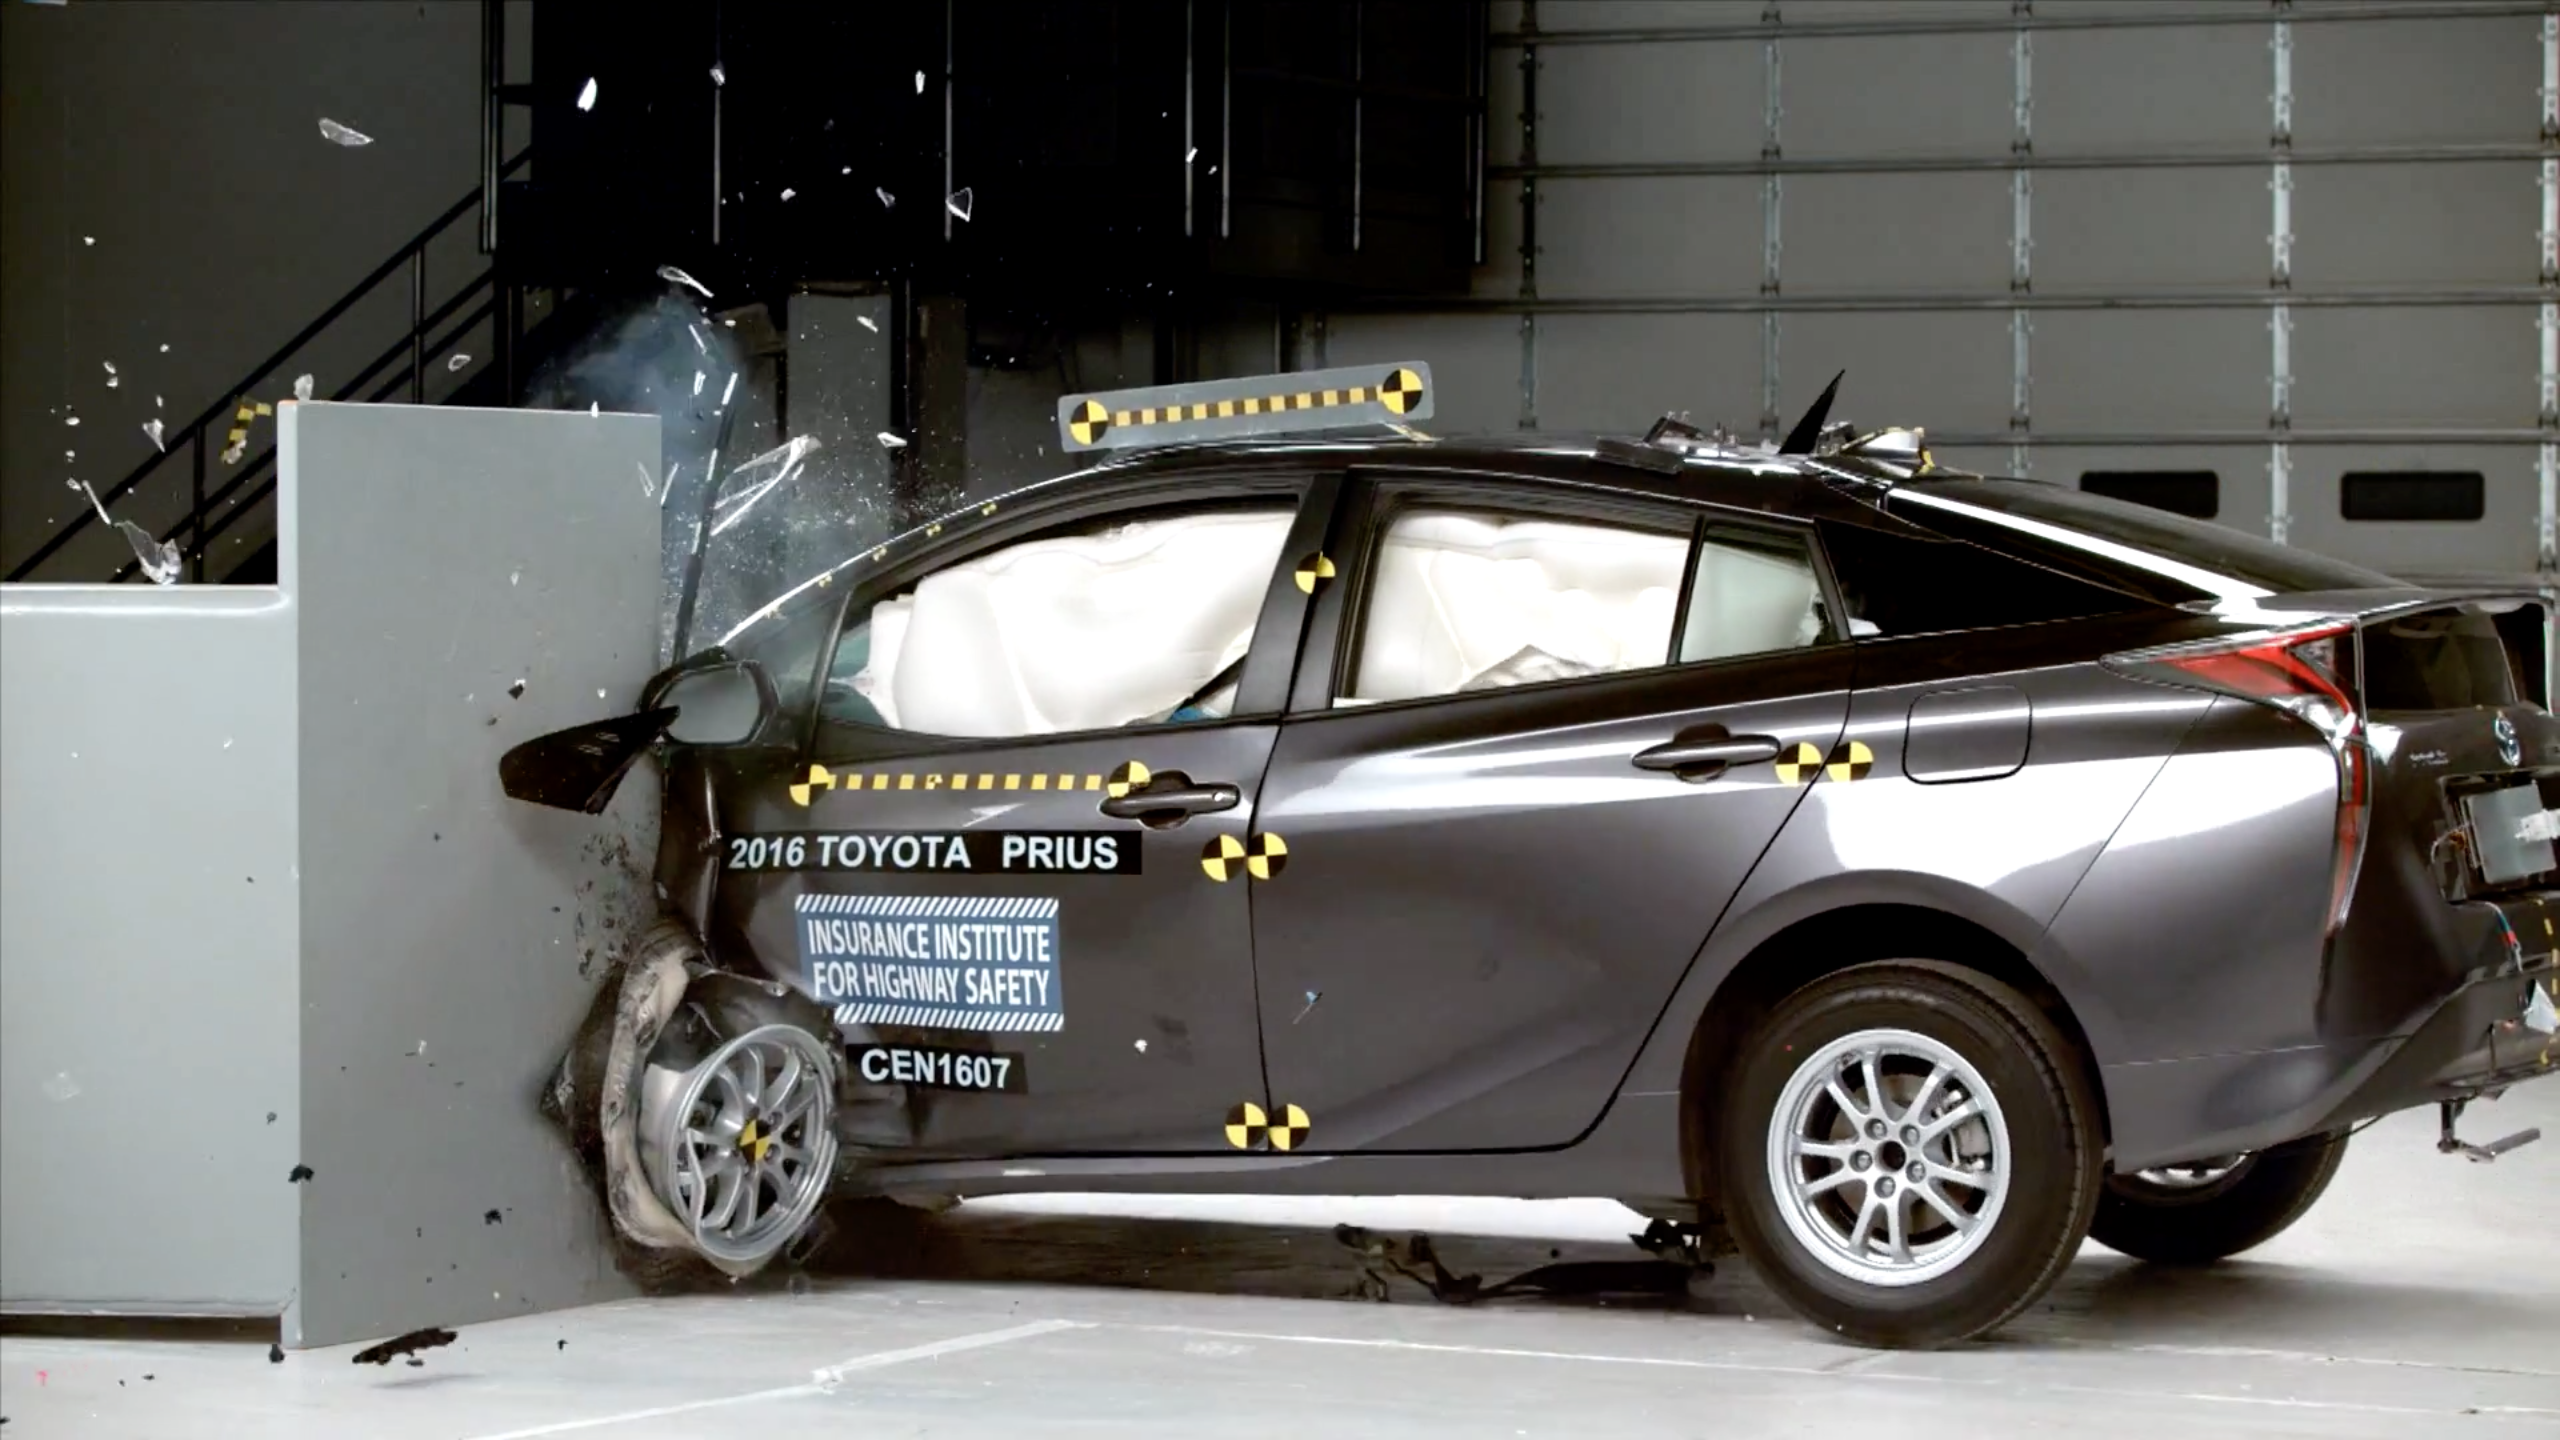 Video: Prius Captures Top Safety Award